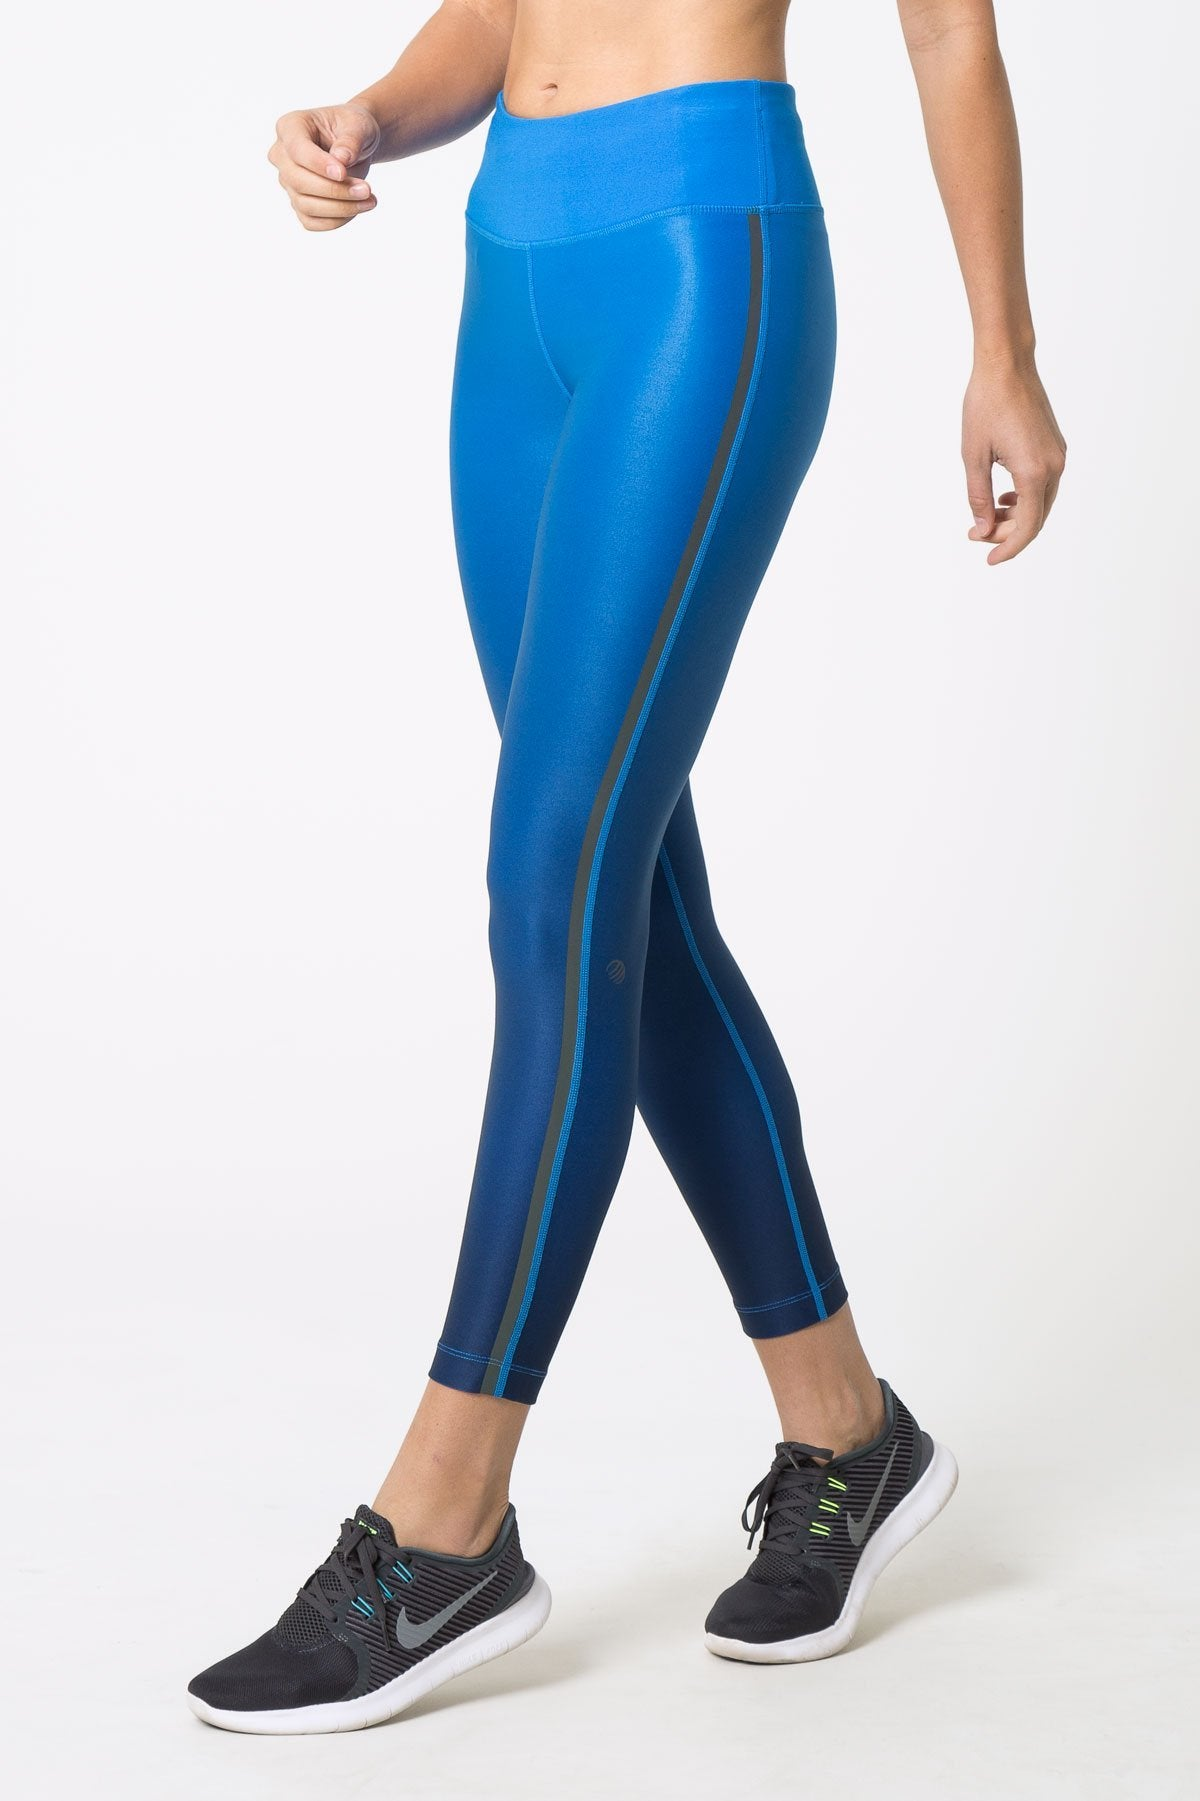 Misty Iridescent Ombre 7/8 leggings by MPG Sport